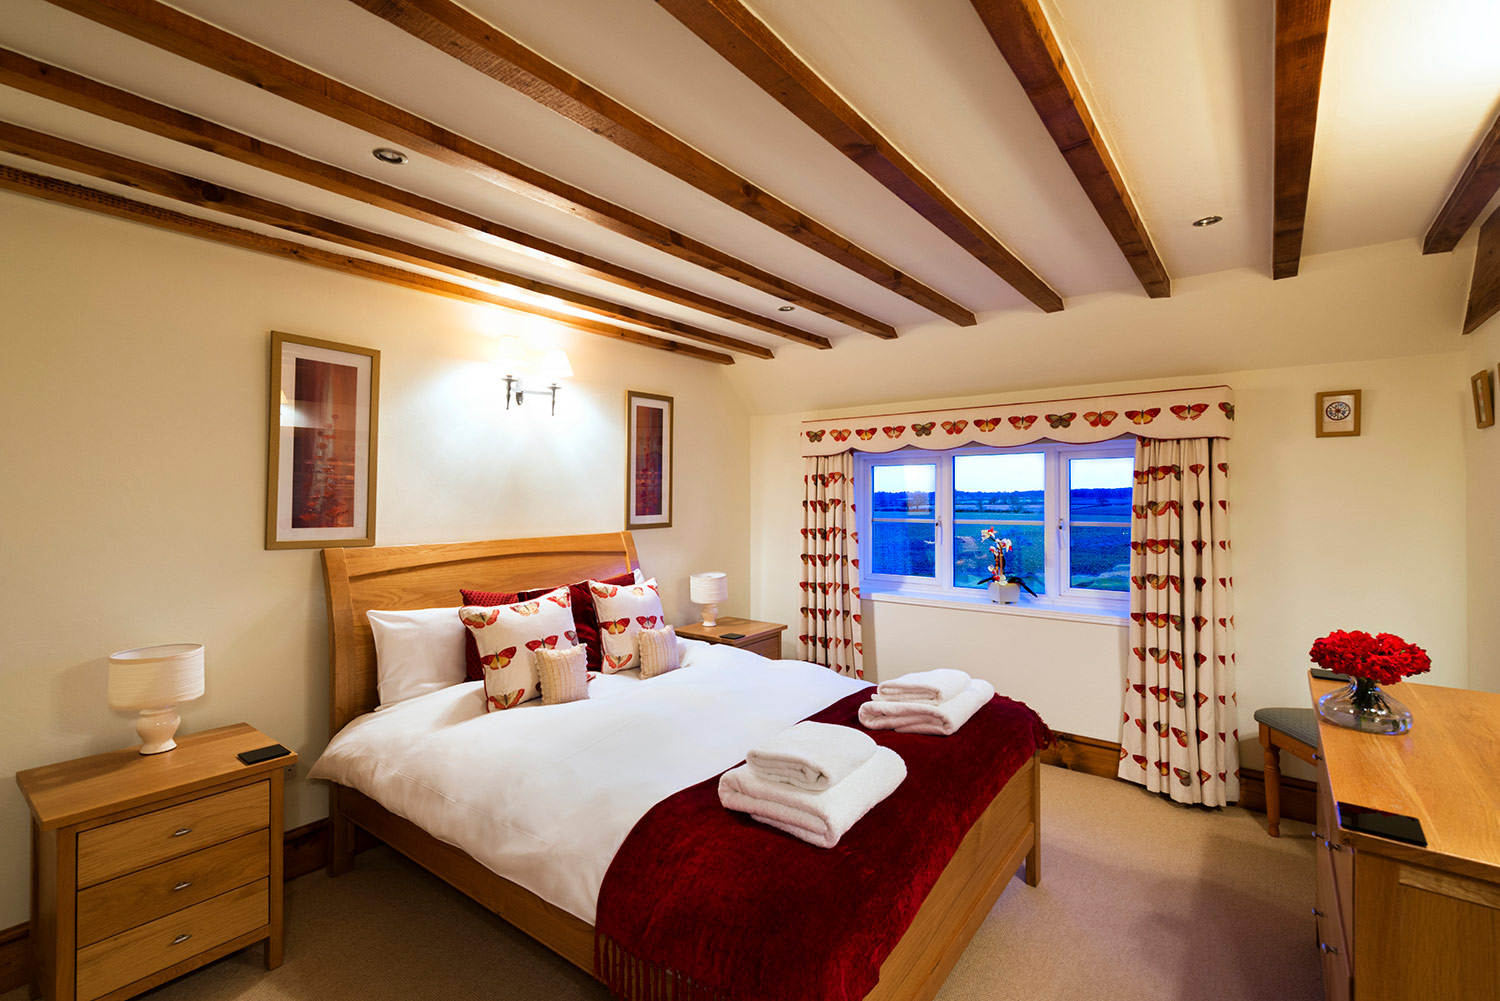 Relax in our ultra comfy beds at our flexible self-catering accommodation in the heart of England | Upper Rectory Farm Cottages